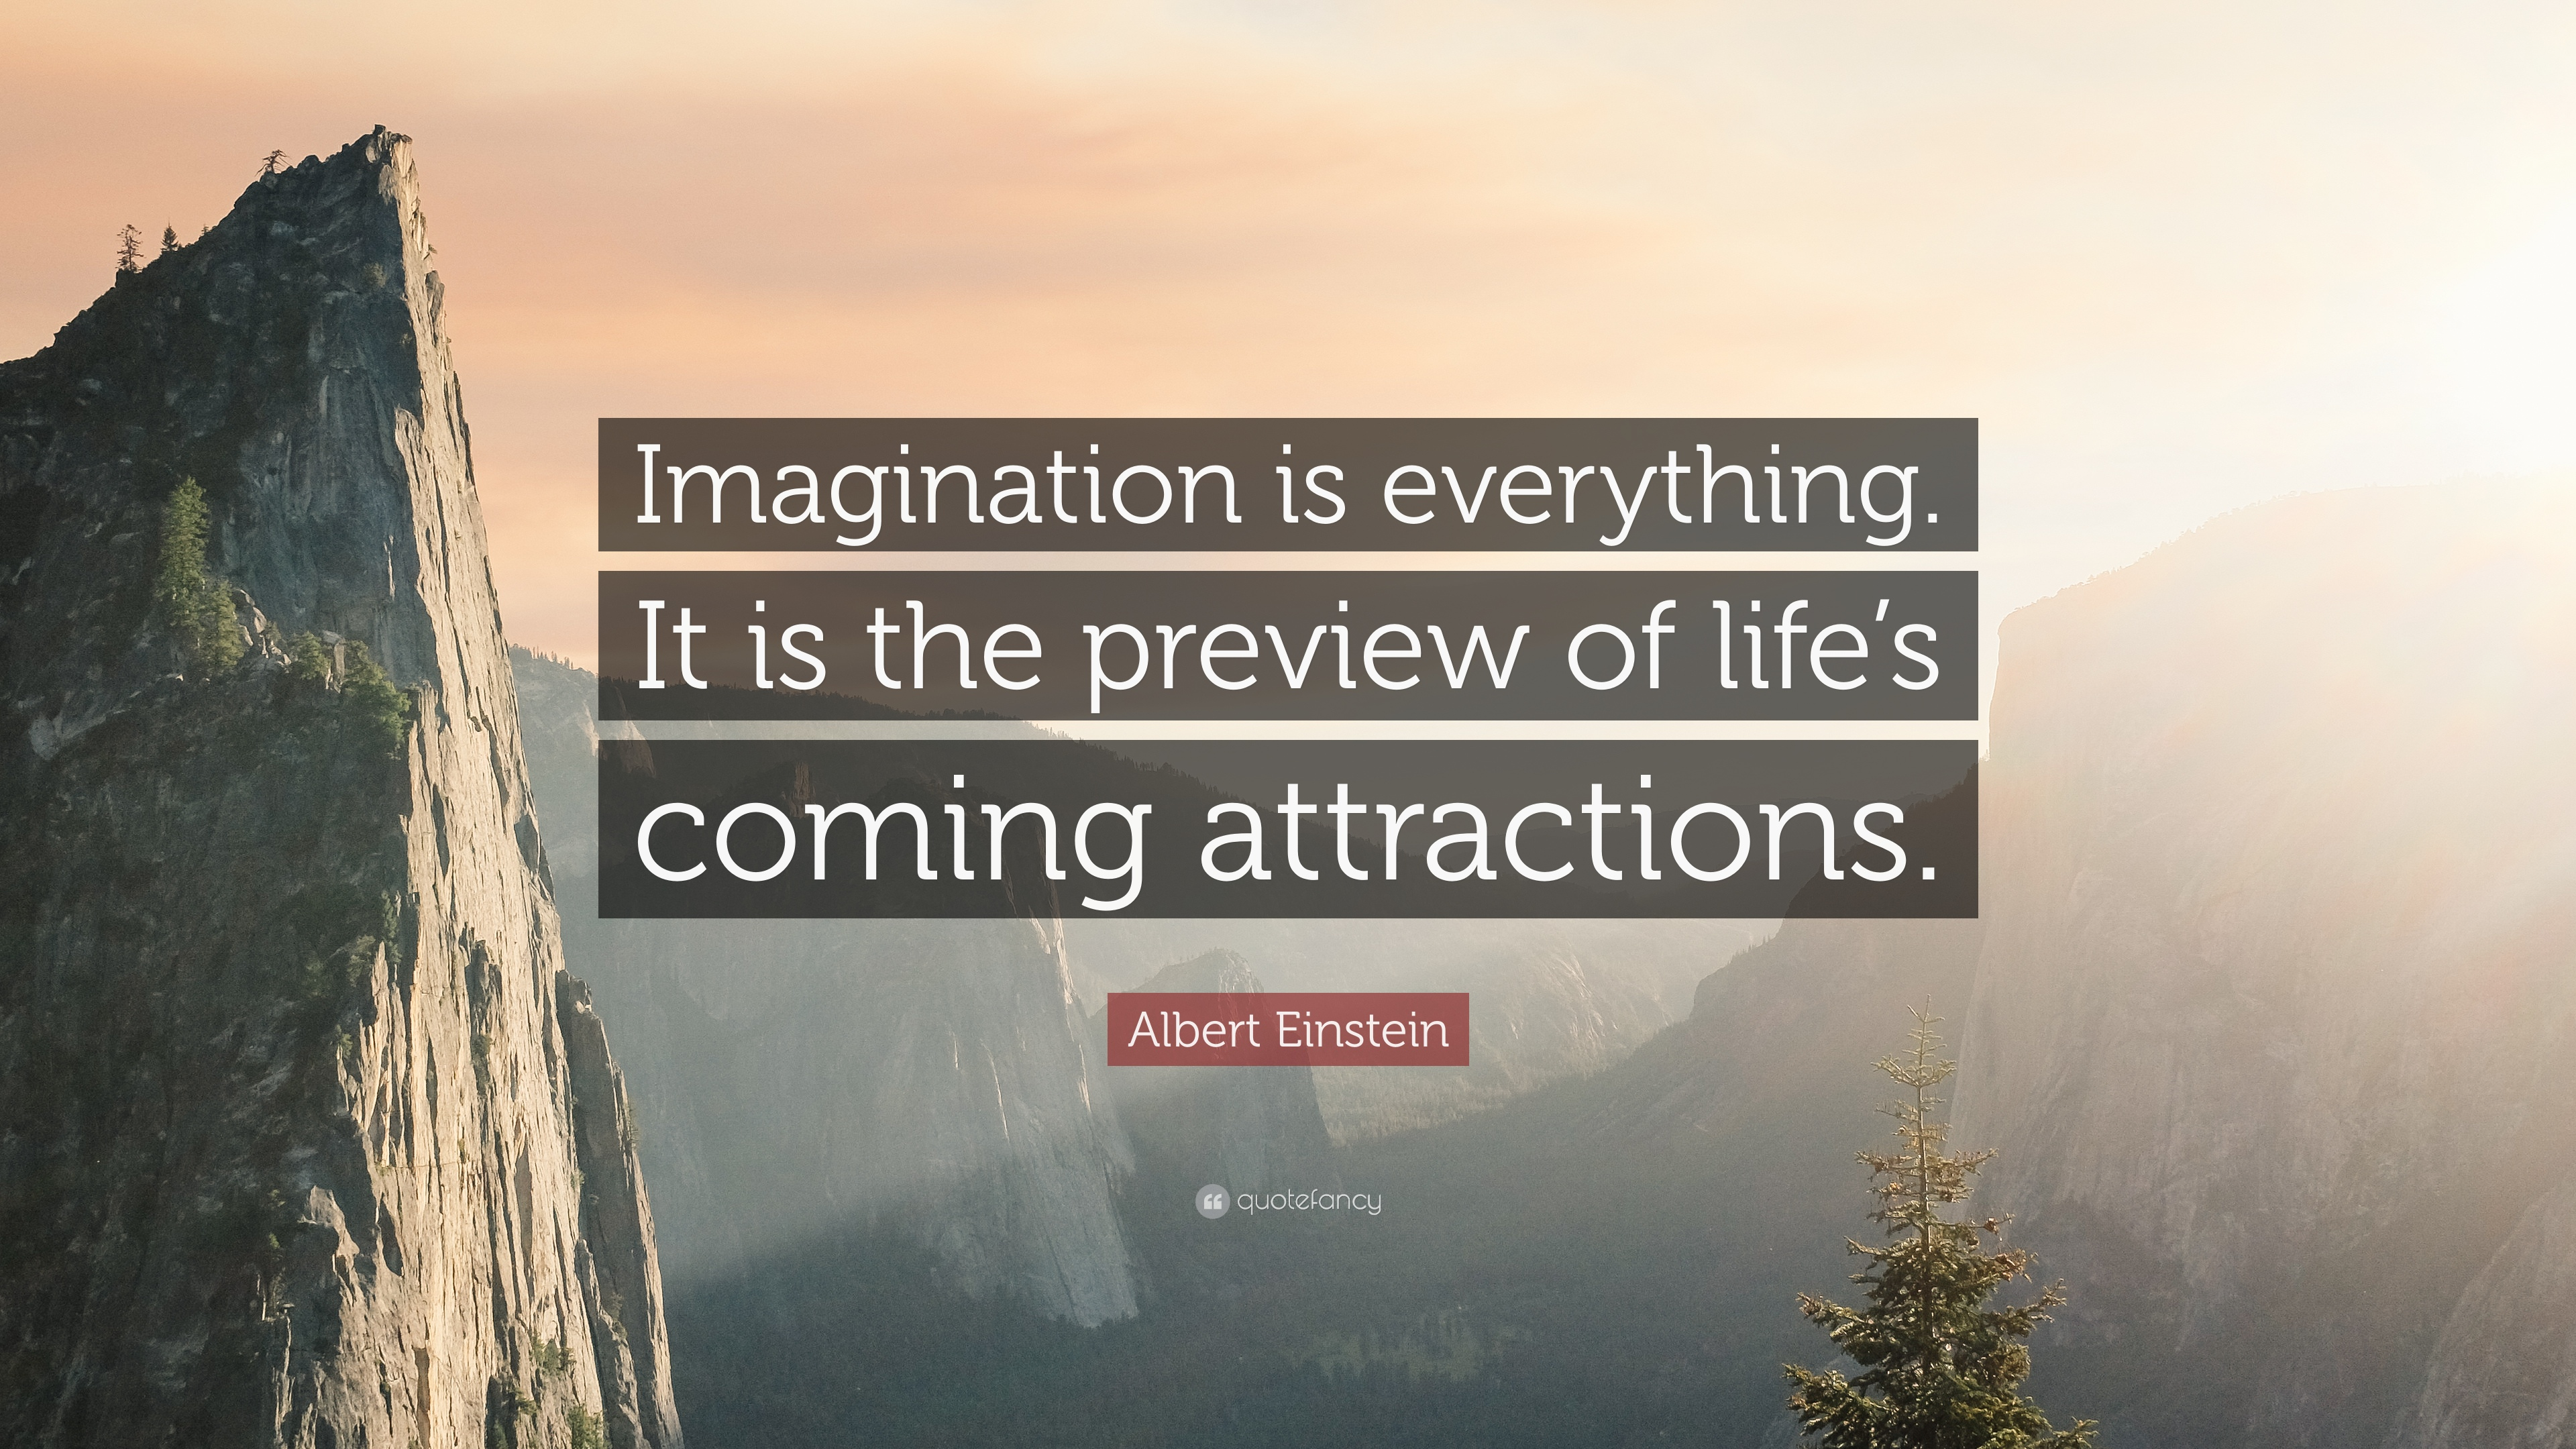 imagination in life